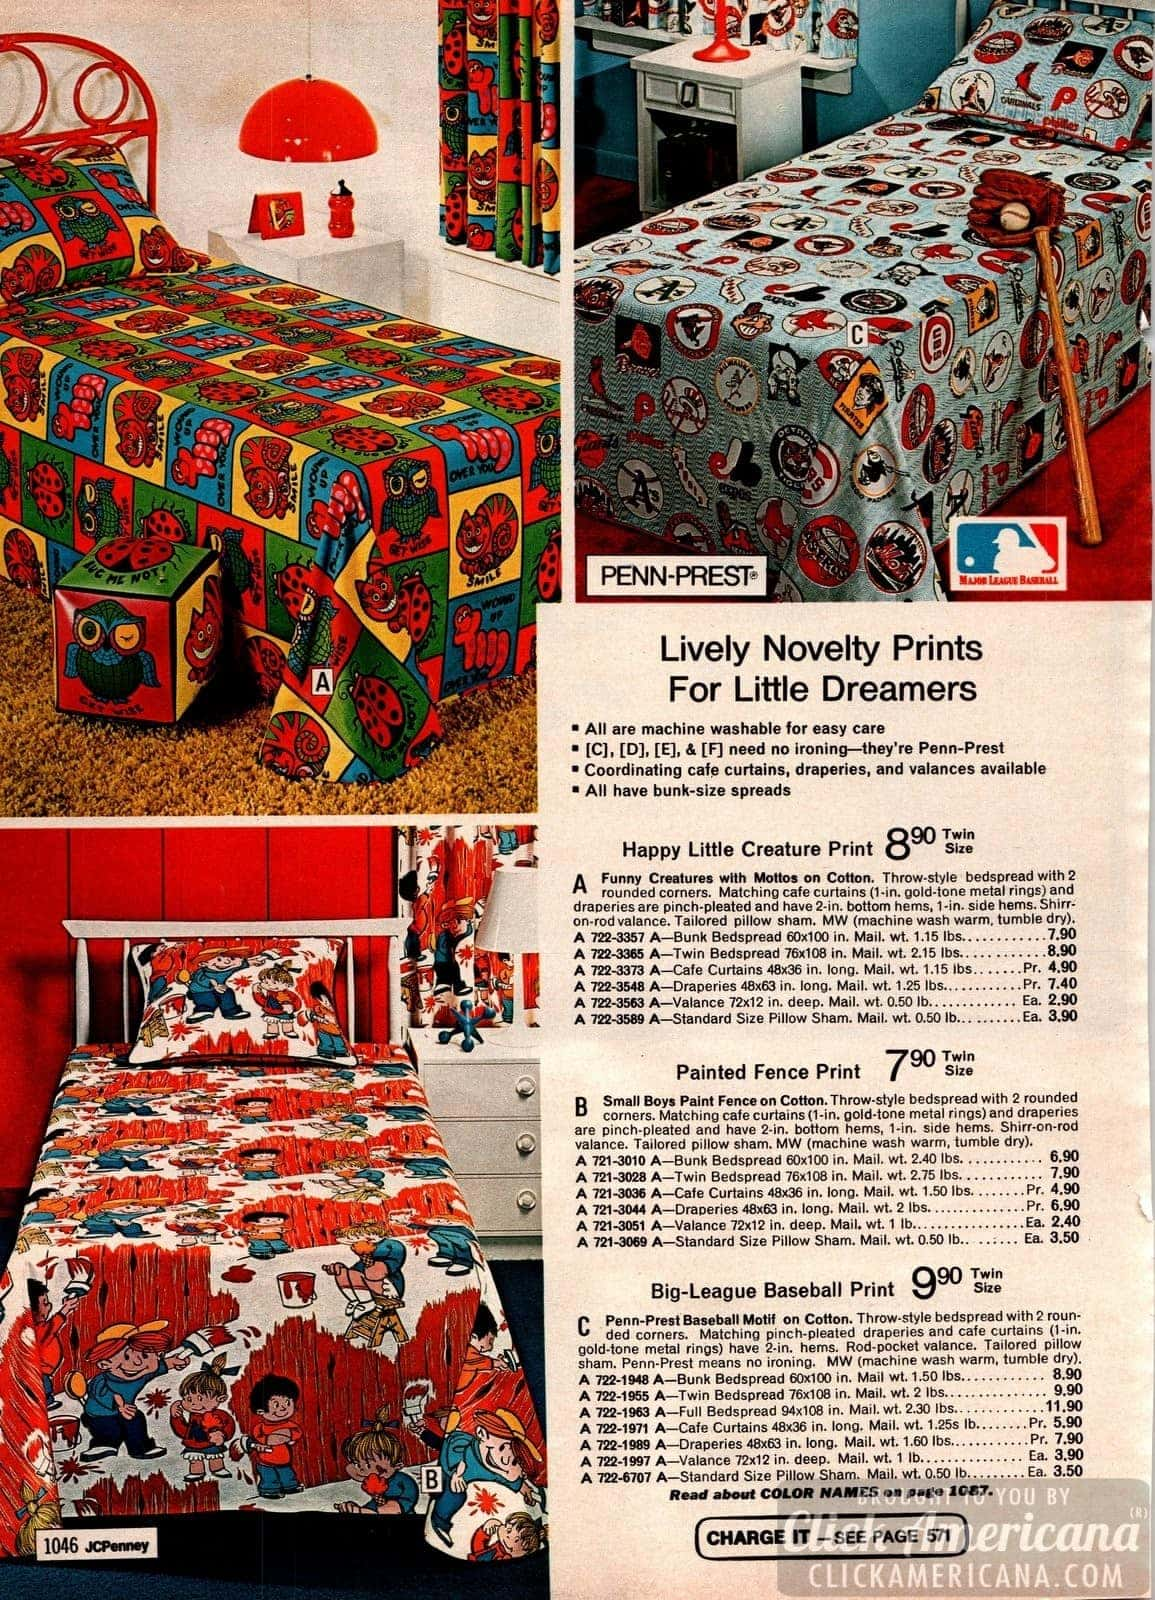 Retro kids' bedspreads - Happy little creature, painted fence and big-league baseball prints